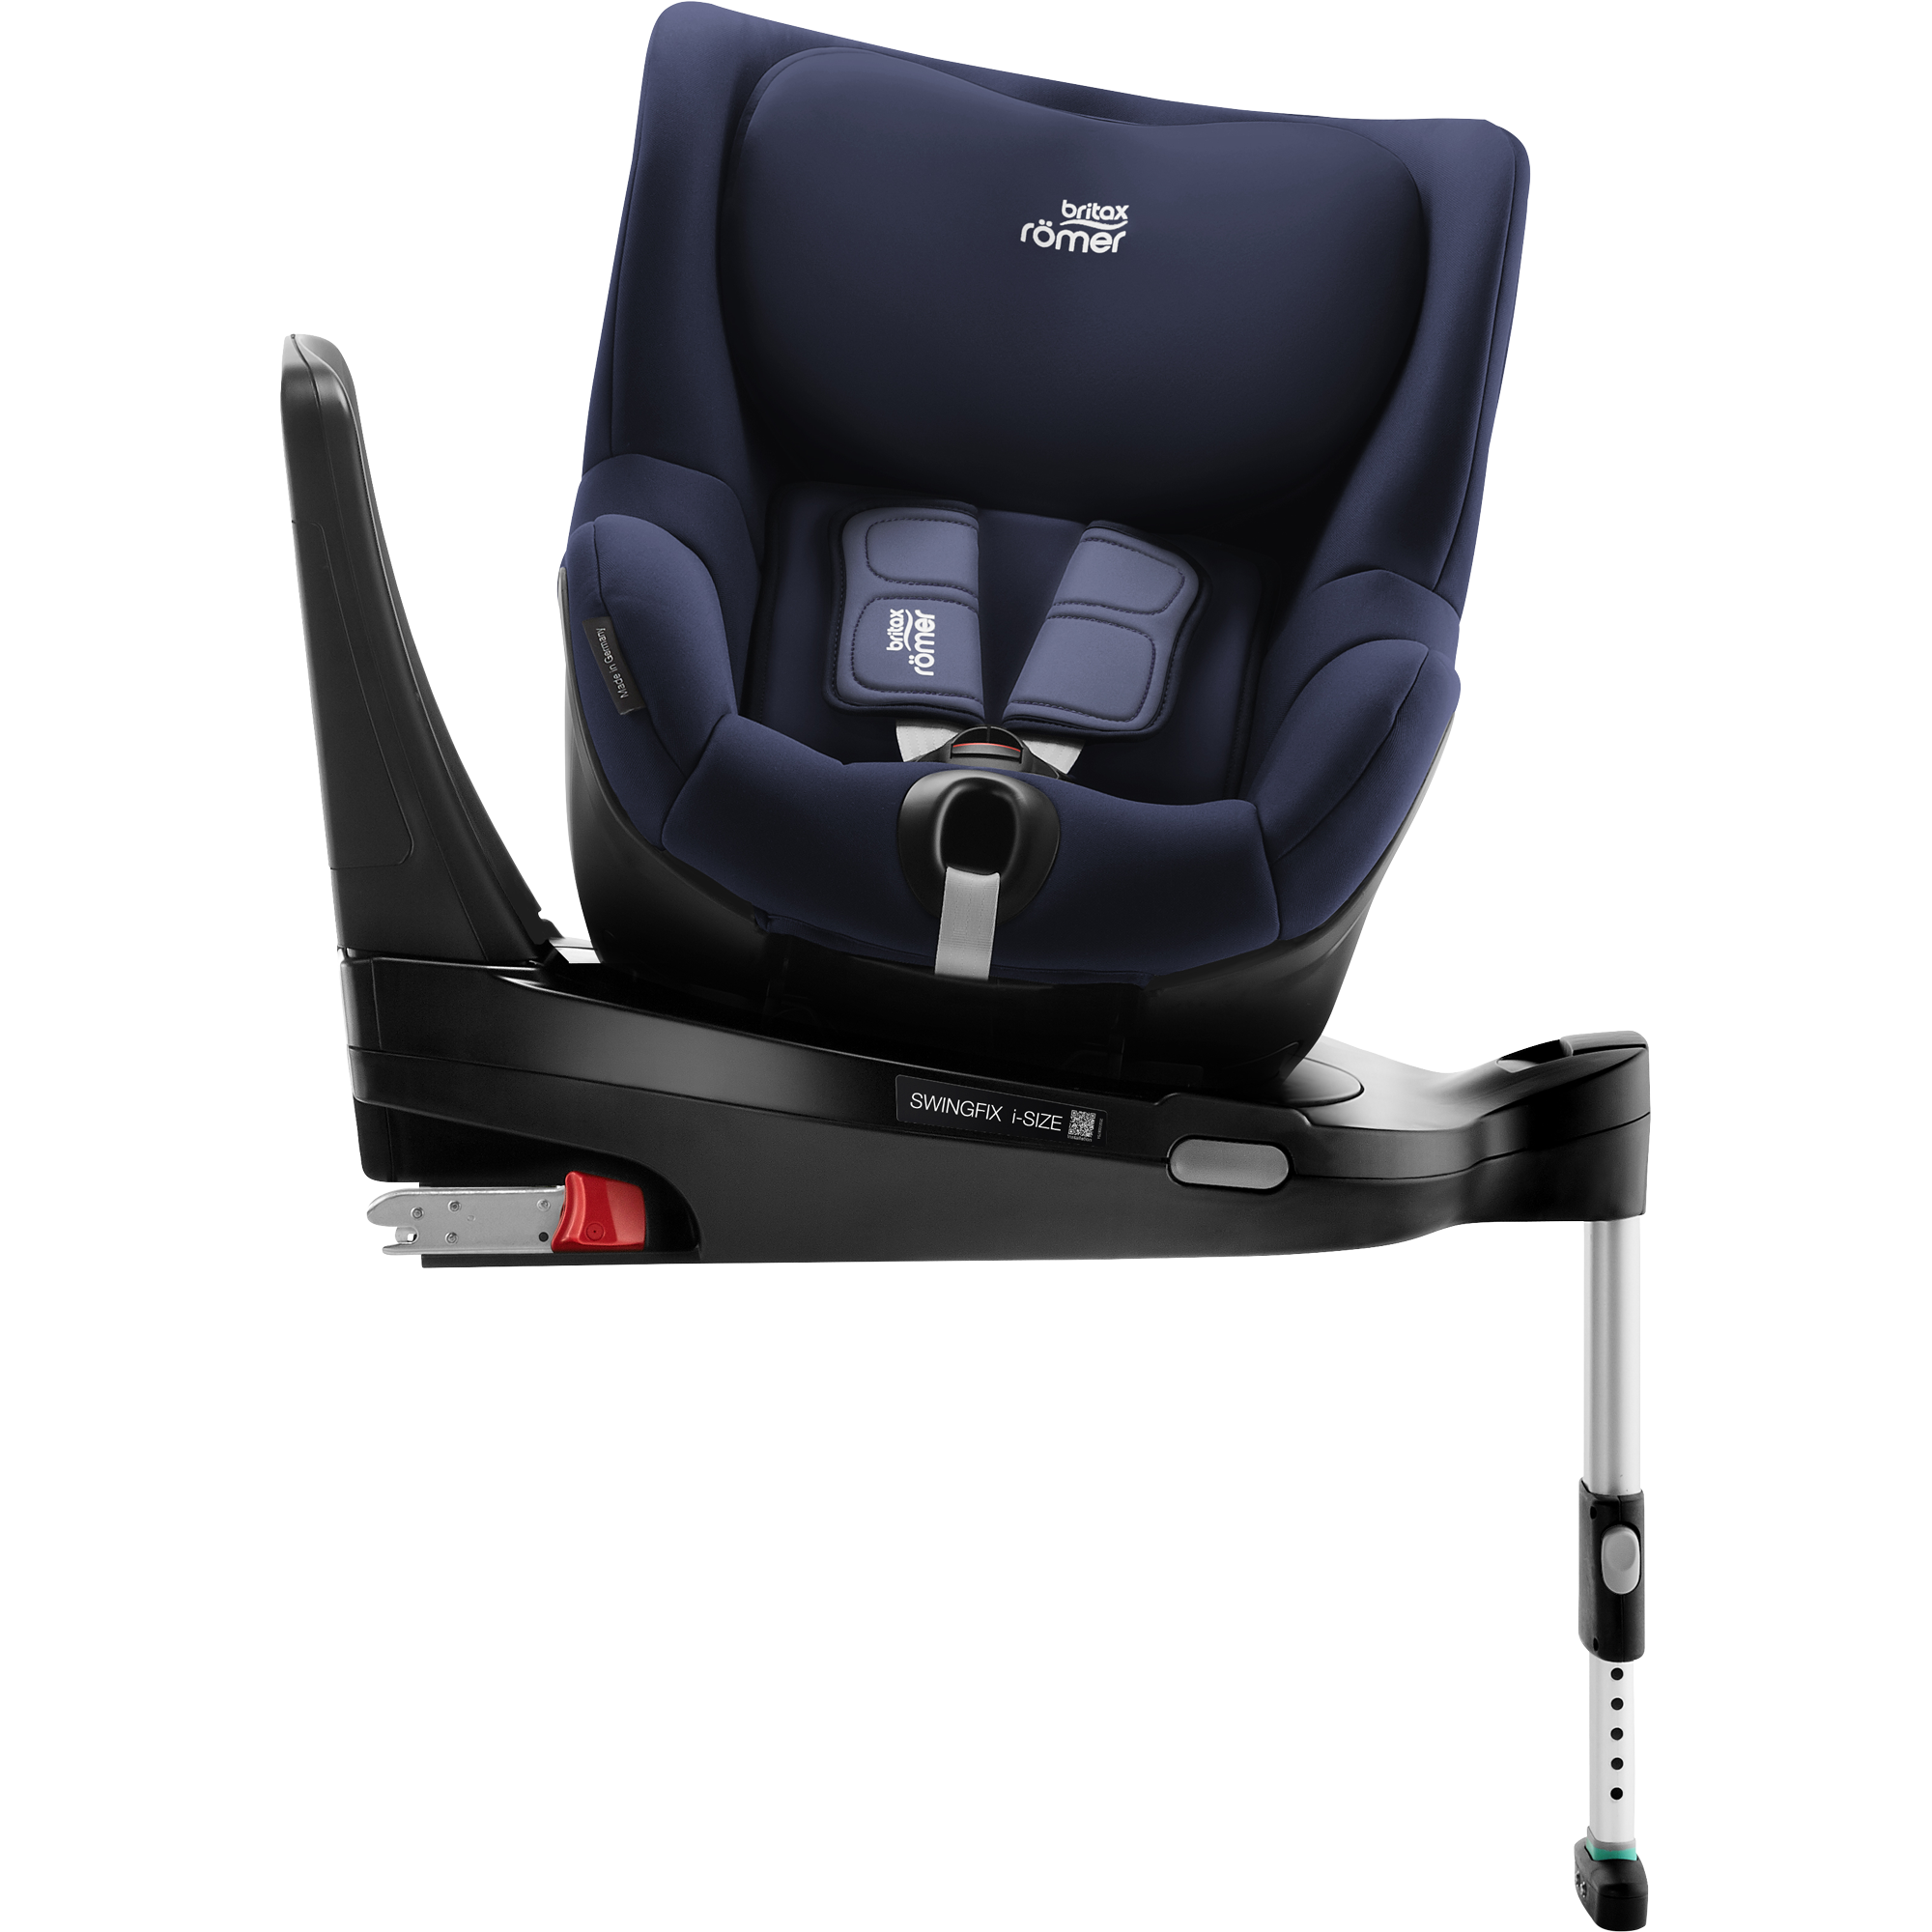 britax r mer child car seat swingfix i size buy at. Black Bedroom Furniture Sets. Home Design Ideas